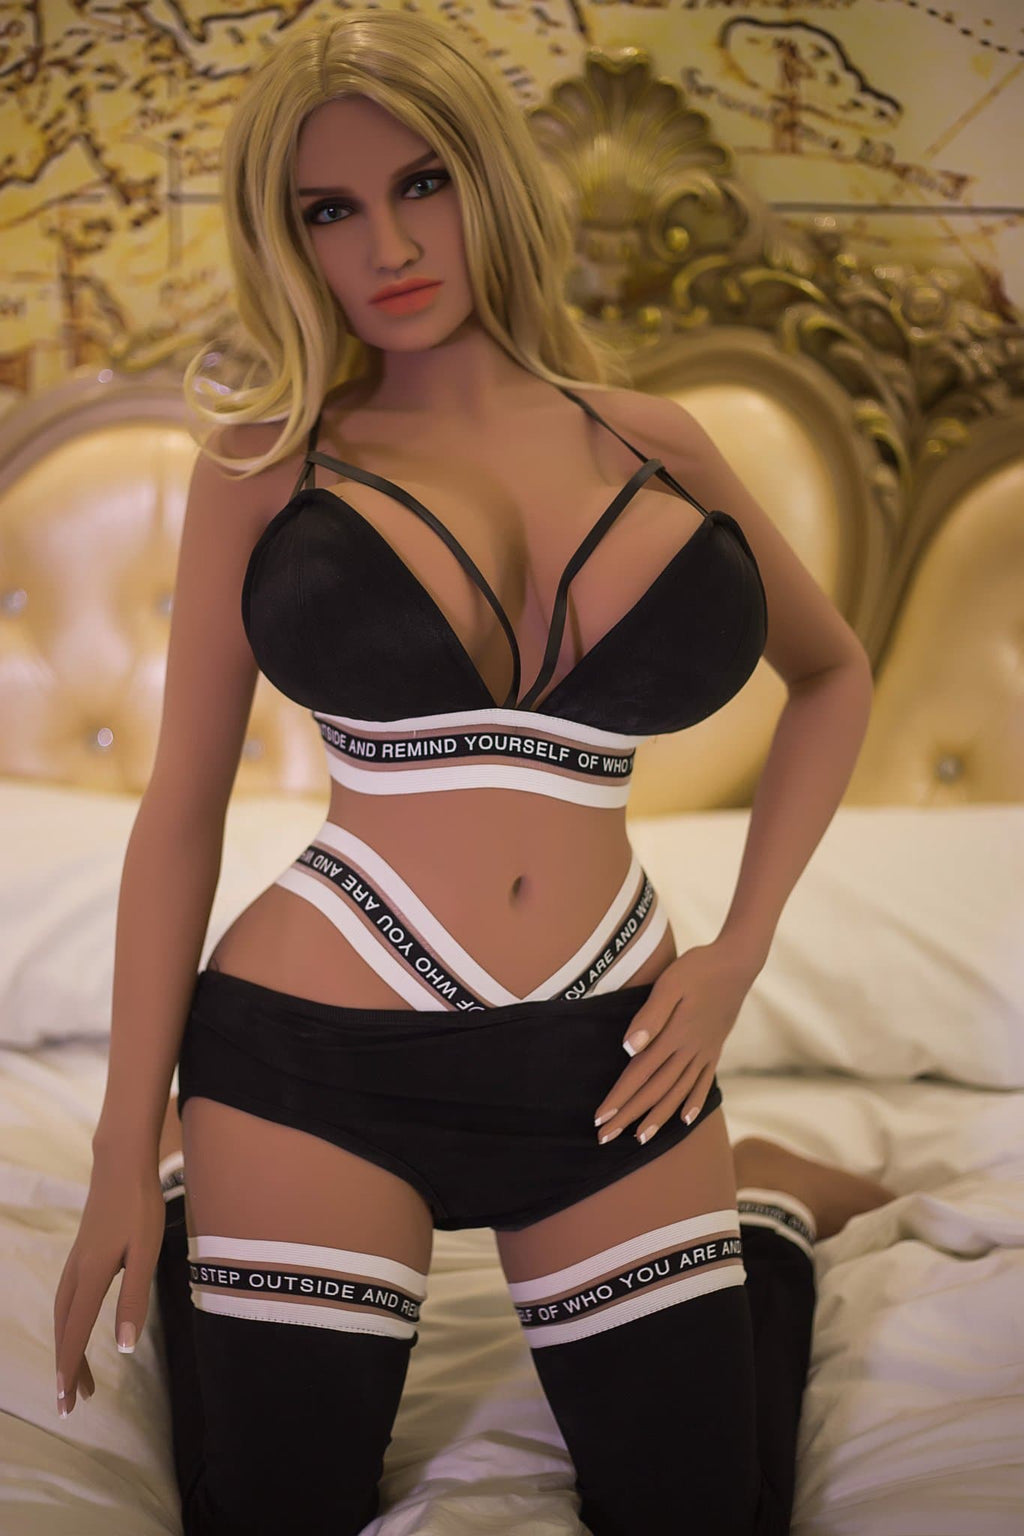 sienna 150cm blonde curvy big boobs tan skin tpe wm small sex doll